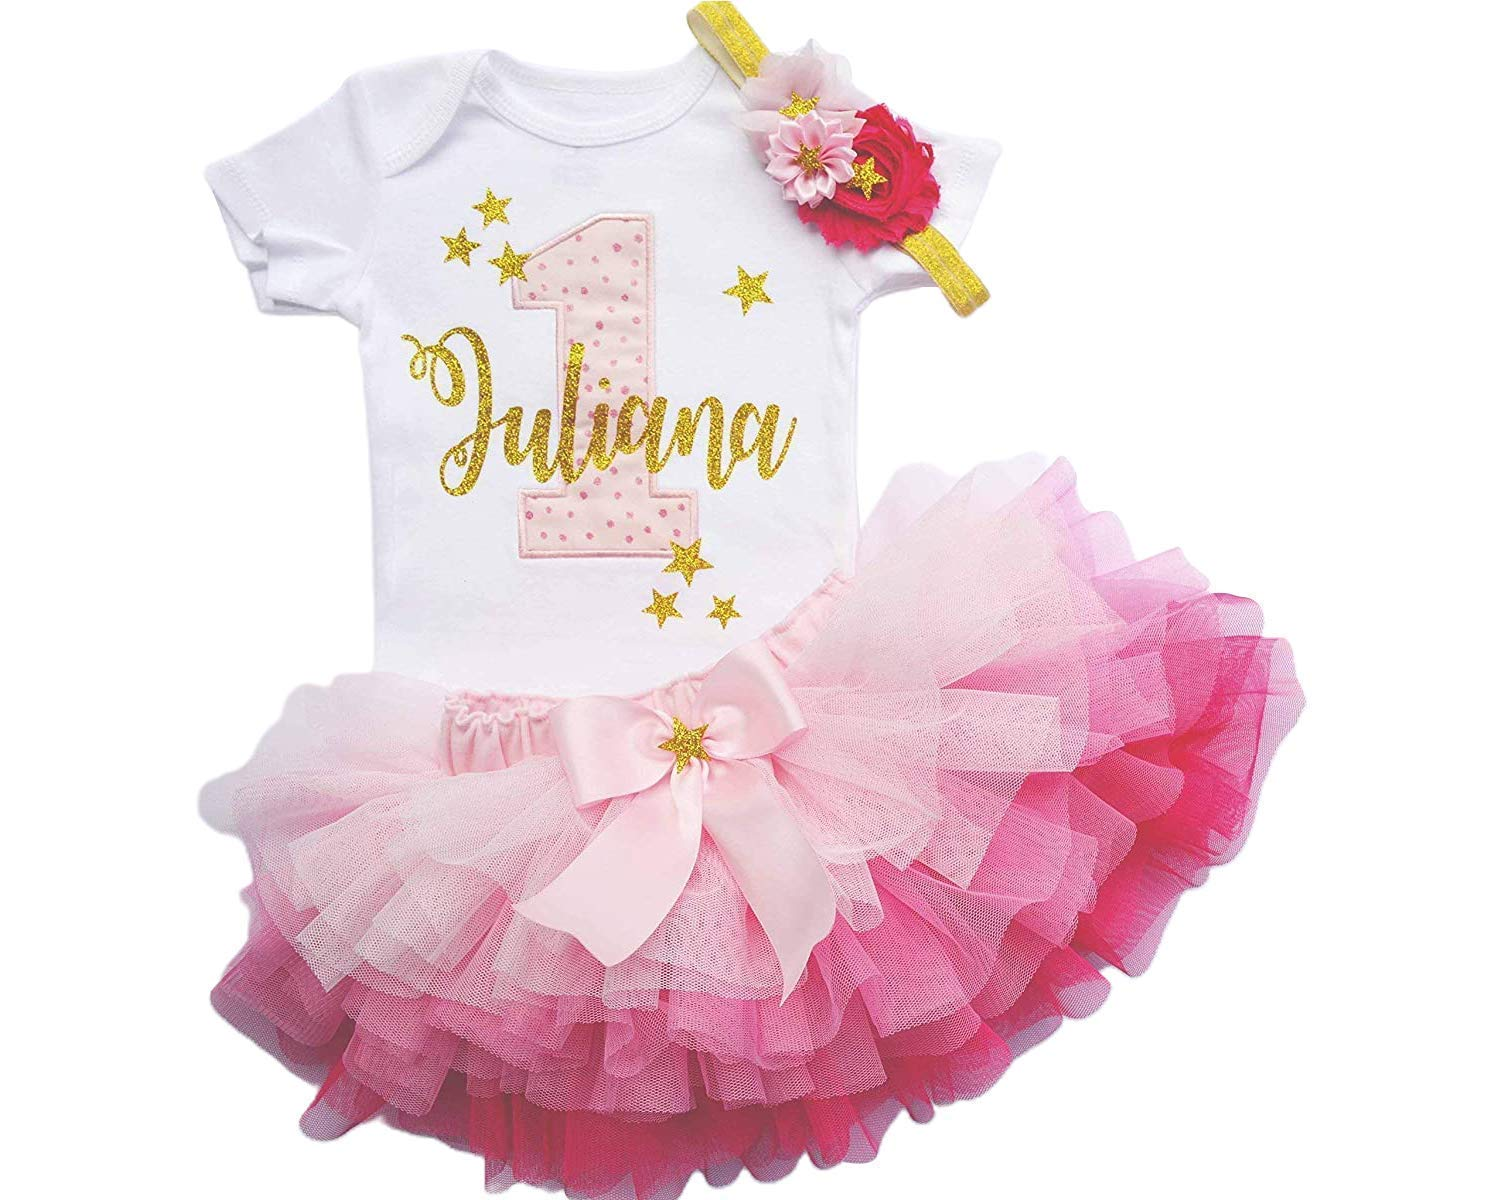 girls twinkle little star 1st birthday outfit little star theme birthday girl twinkle little star first birthday girl 1st birthday outfit